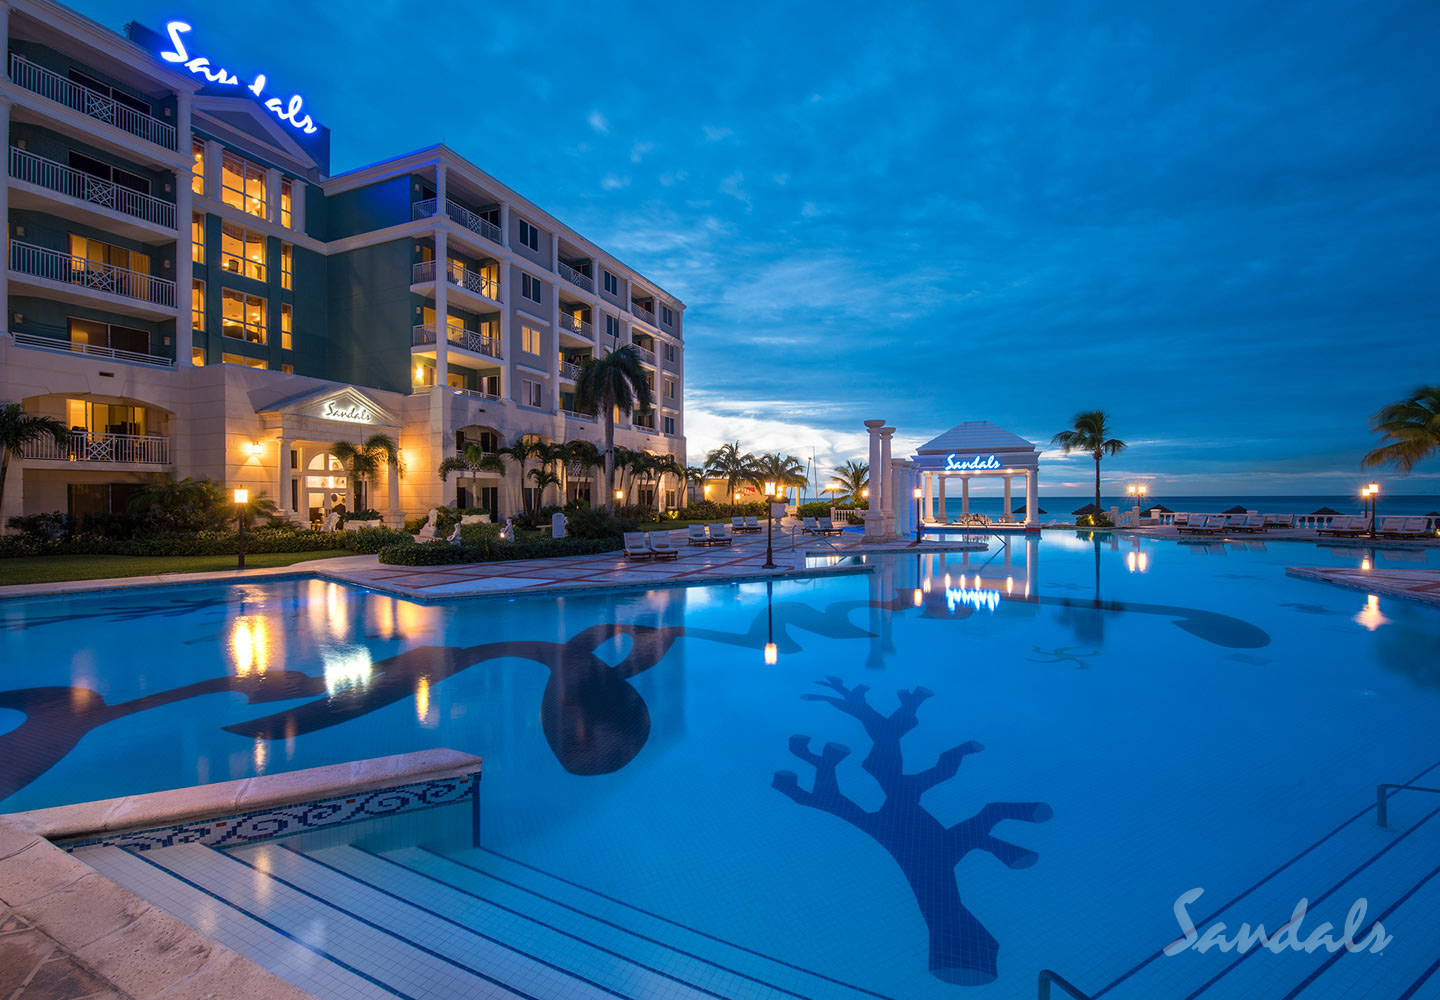 Travel Agency All-Inclusive Resort Sandals Royal Bahamian 063